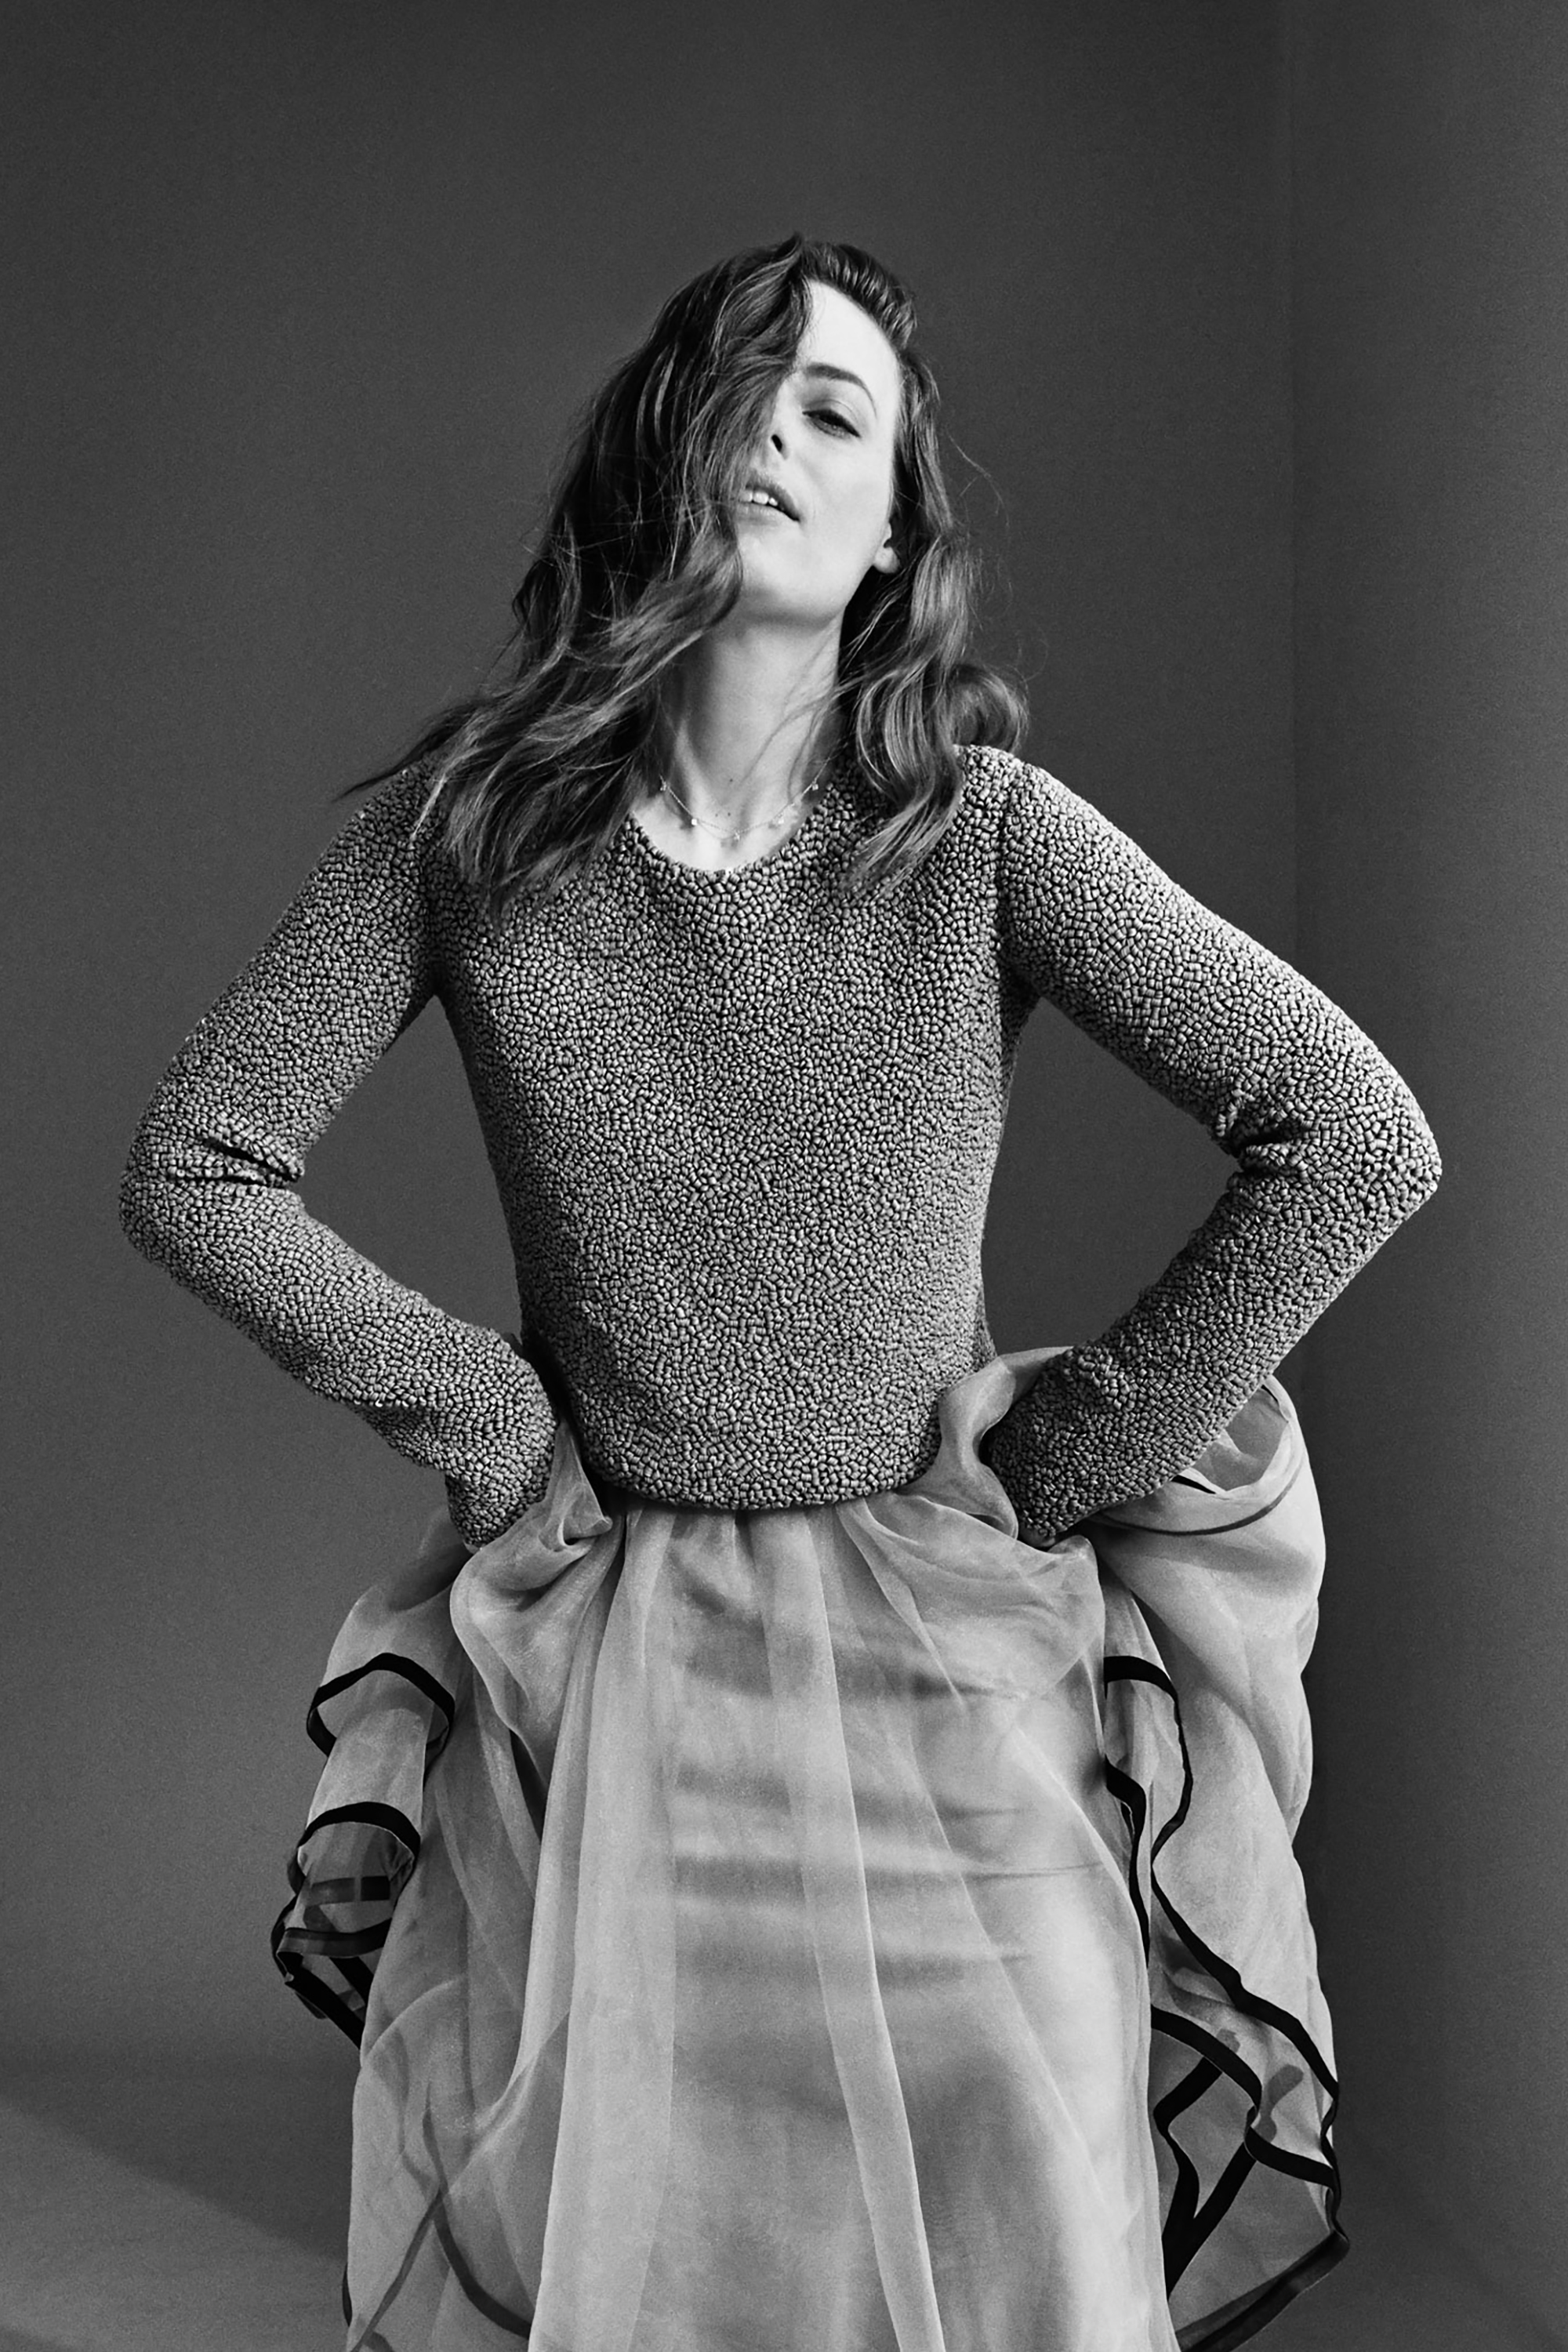 Top by   JEFFREY DODD  ,Skirt by   ANTONIO MARRAS  ,Necklace and Ear cuffs by   ERINESS